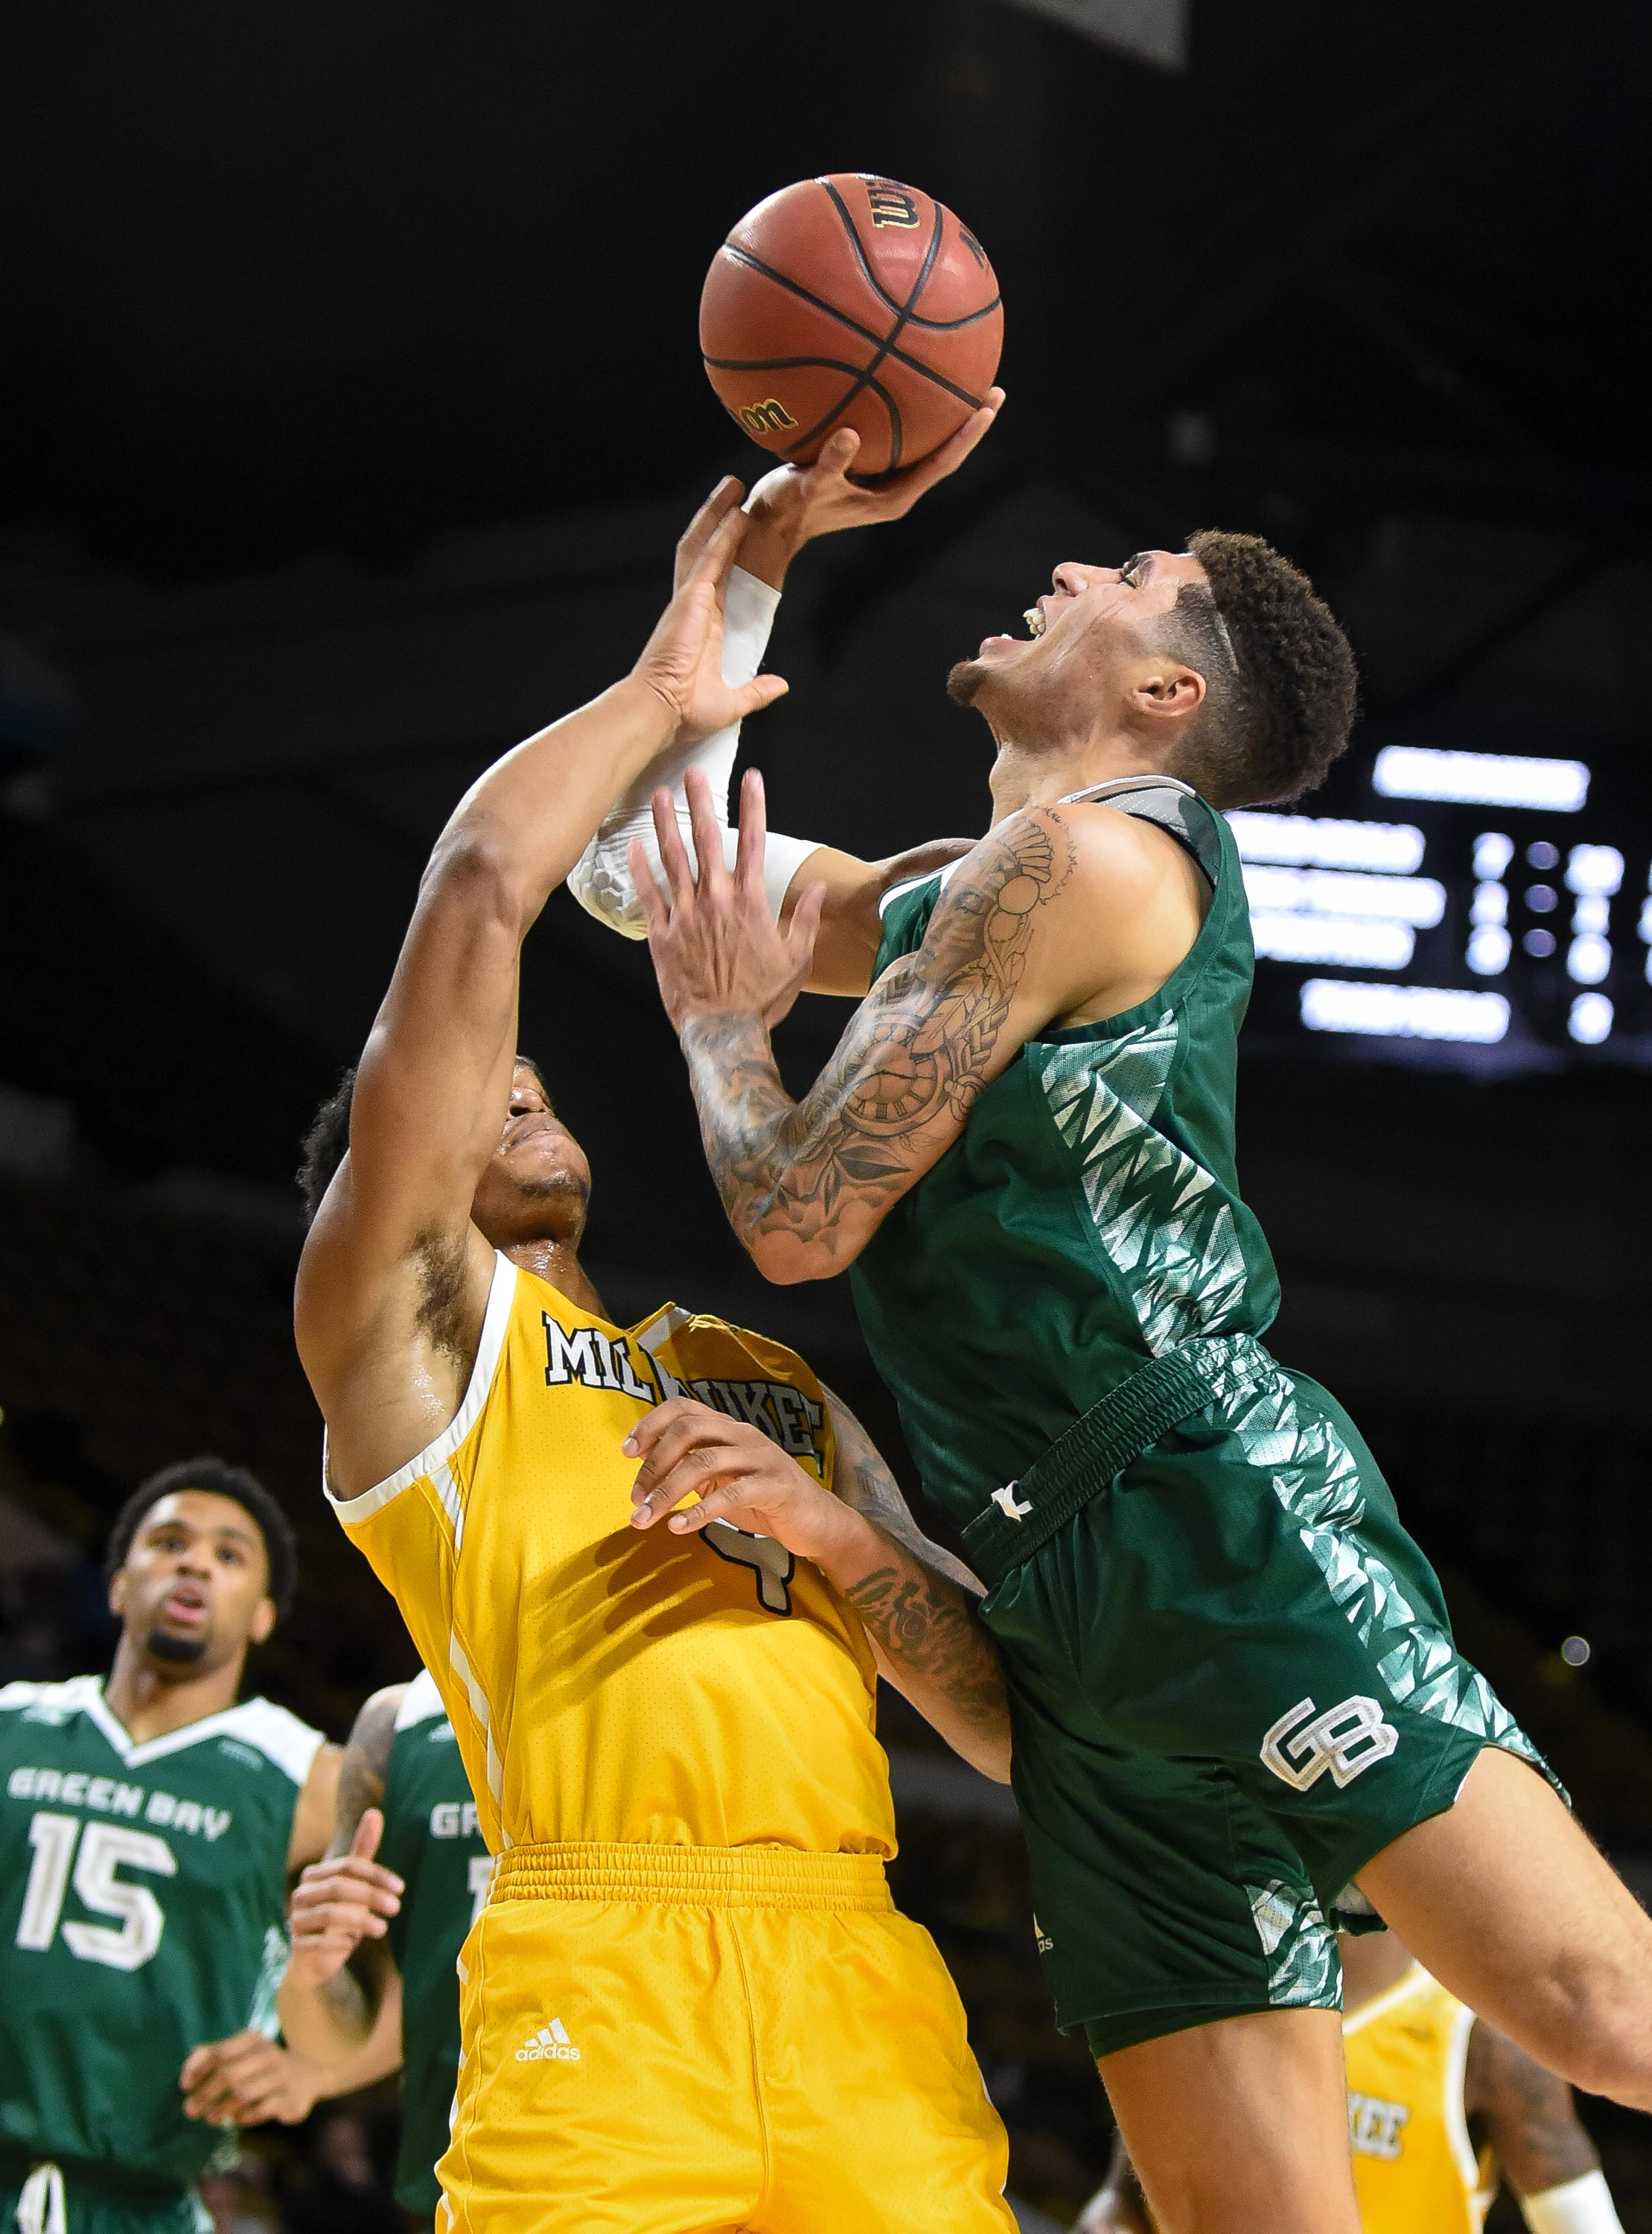 UW-Green Bay guard Sandy Cohen III drives and draws a foul on UW-Milwaukee forward/center Wil Sessoms in a Horizon League men's basketball game at UW-Milwaukee Panther Arena earlier this year.